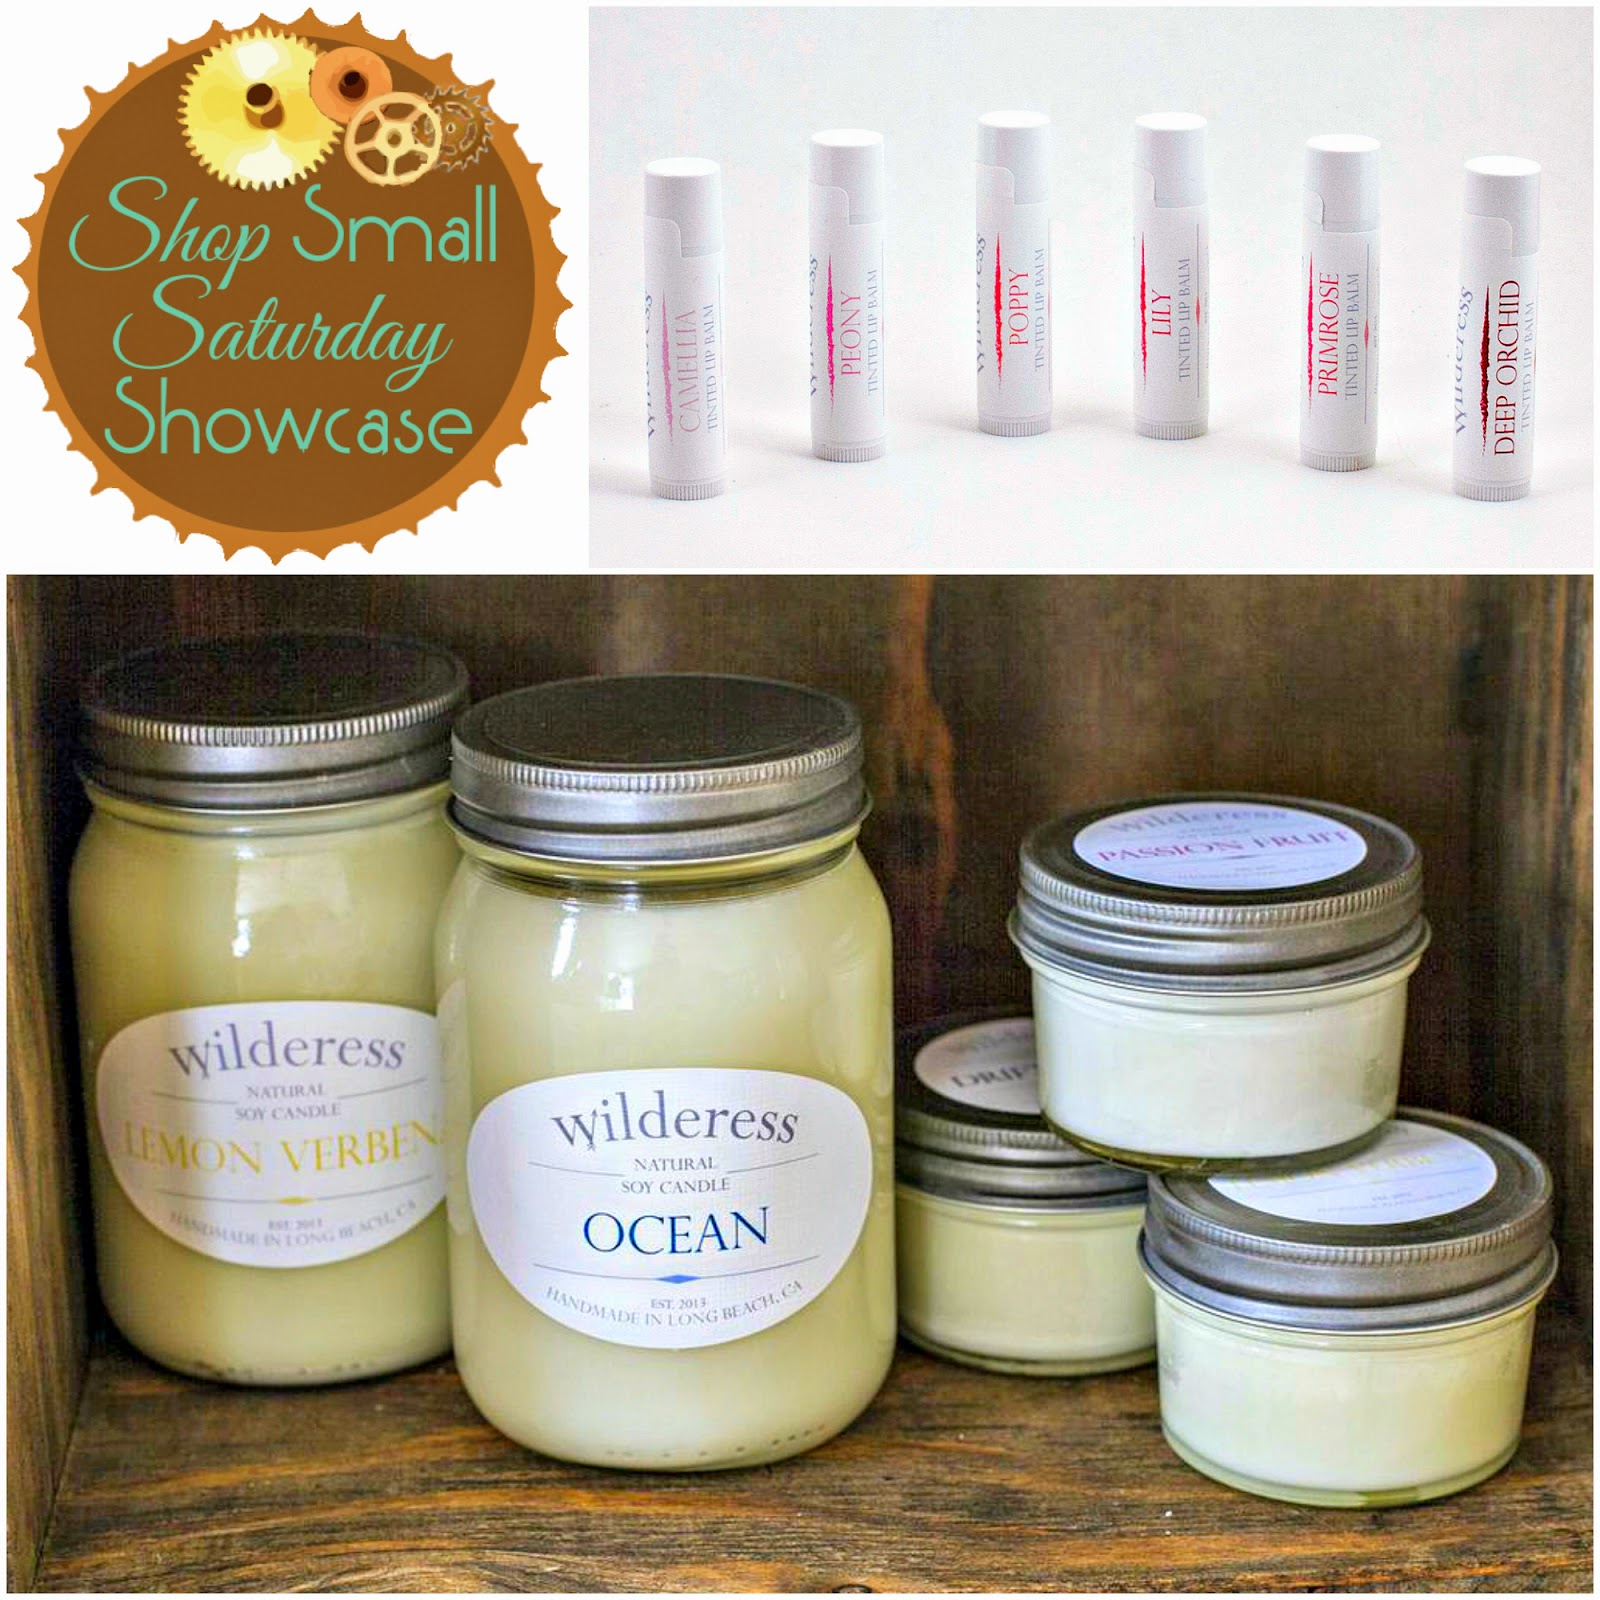 Wilderess Candles & Jewelry Shop Small Saturday Showcase Feature on Diane's Vintage Zest!